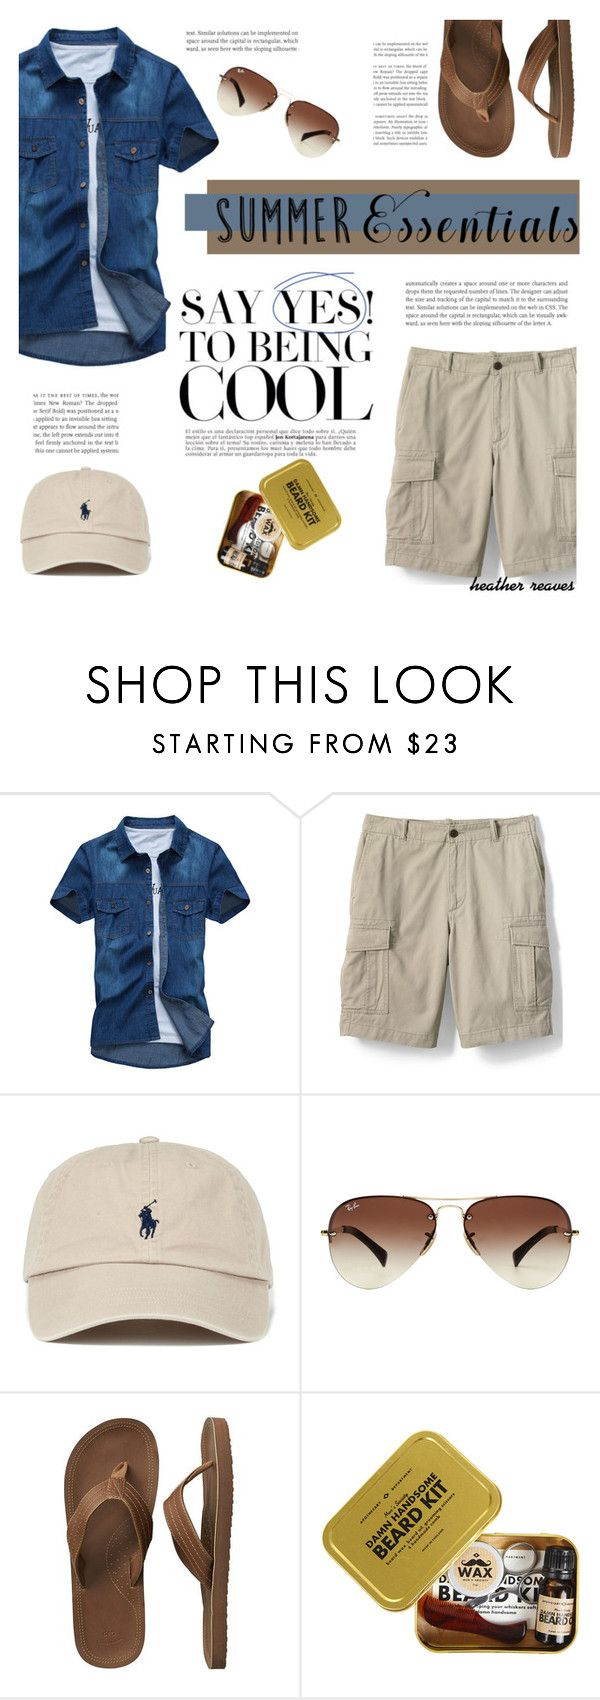 """""""Summer Menswear Essentials"""" by heather-reaves ❤ liked on Polyvore featuring Lands' End, Ray-Ban, Gap, Men's Society, men's fashion, menswear and summermenswearessentials"""